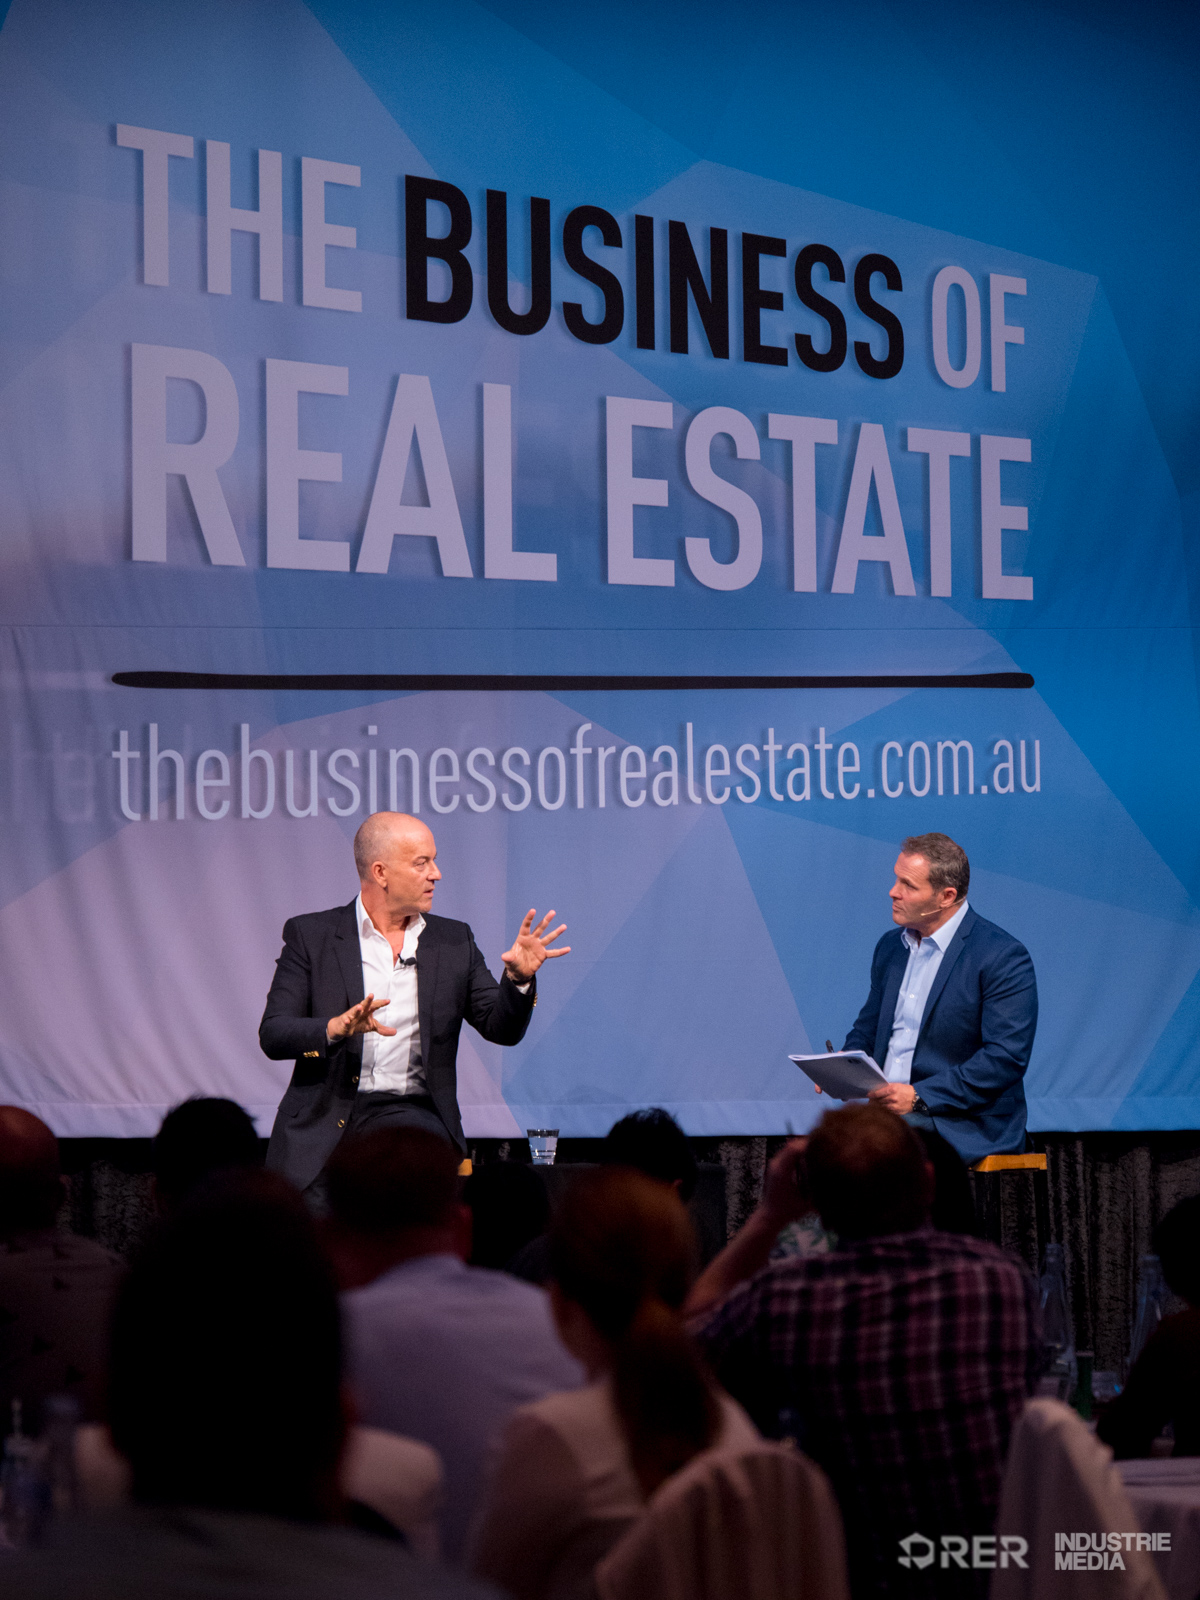 https://www.thebusinessofrealestate.com.au/wp-content/uploads/2016/09/RER_BUSINESS_OF_REAL_ESTATE-83.jpg